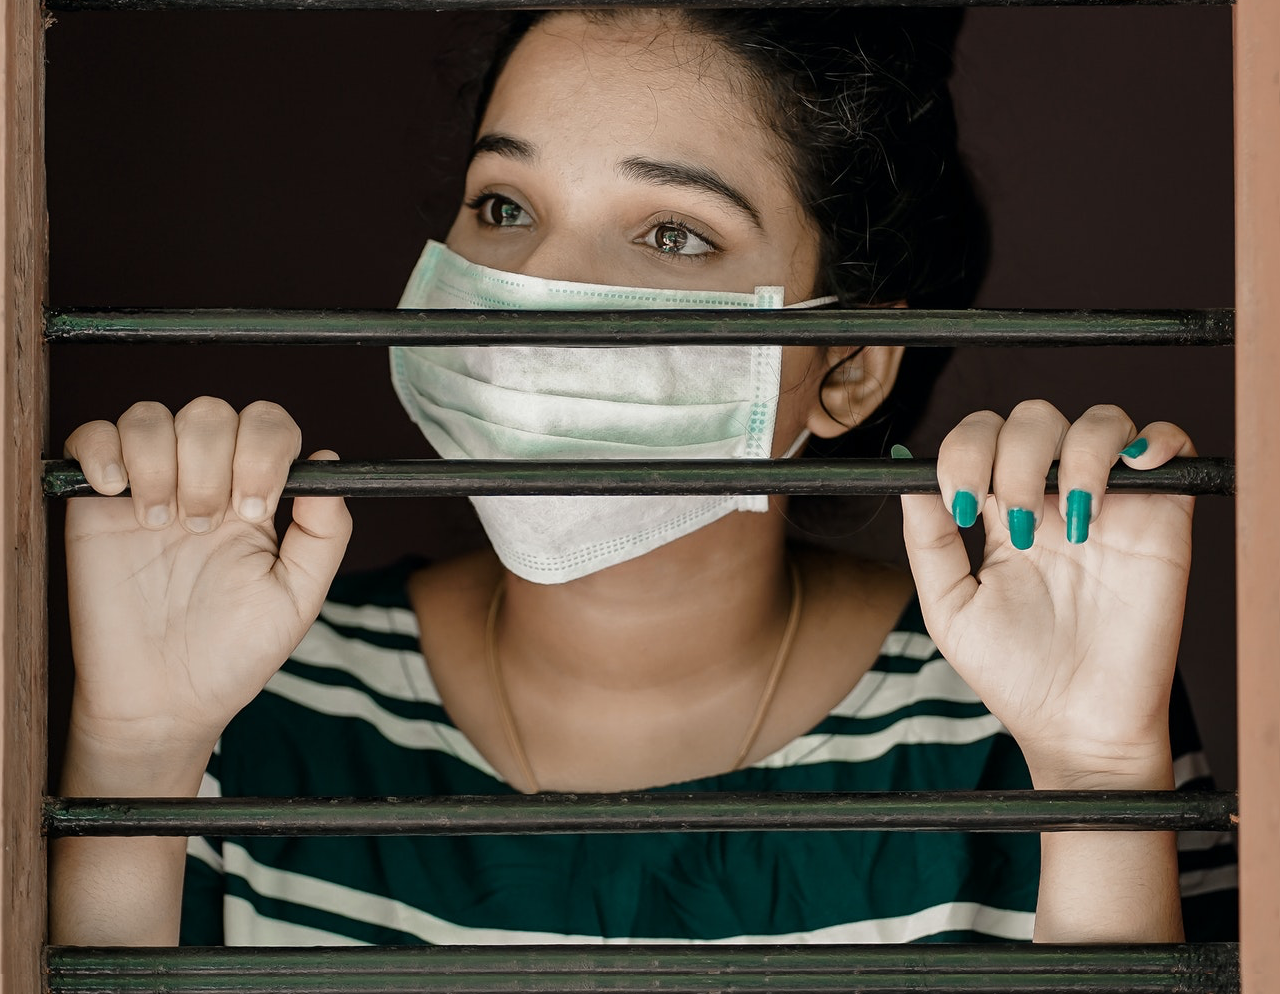 Is The COVID-19 Dilemma Over? A young woman wearing a surgical face mask behind jail bars.